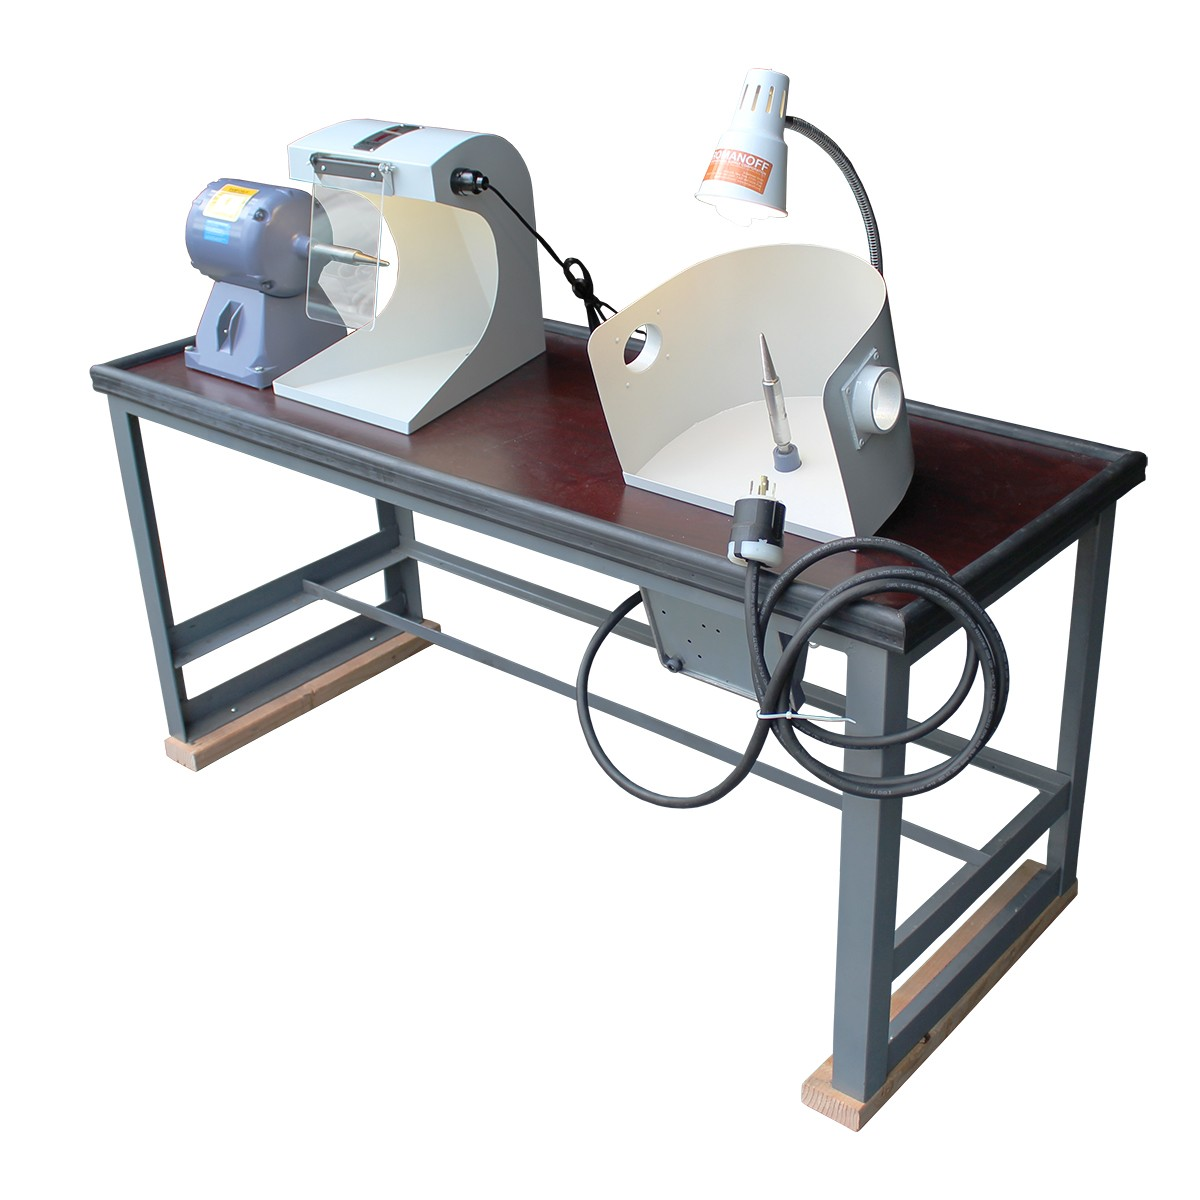 Polishing Bench Systems - 1 Polishing Motor & 1 Split Lap - 220V/380V